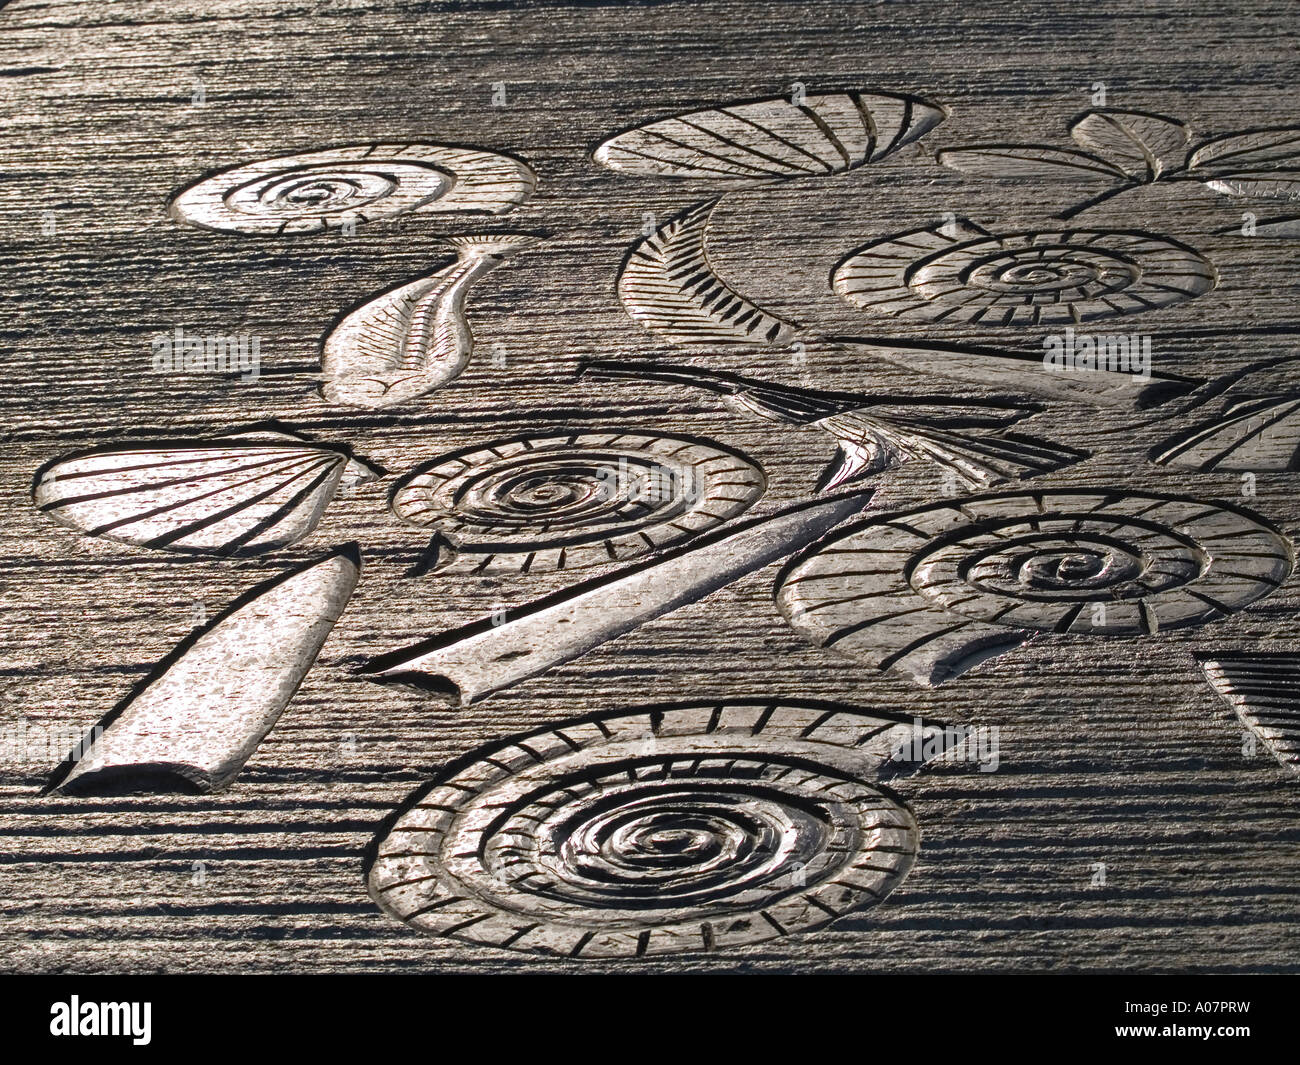 Concrete pavement embossed with depictions of fossils at Whitby North Yorkshire - Stock Image